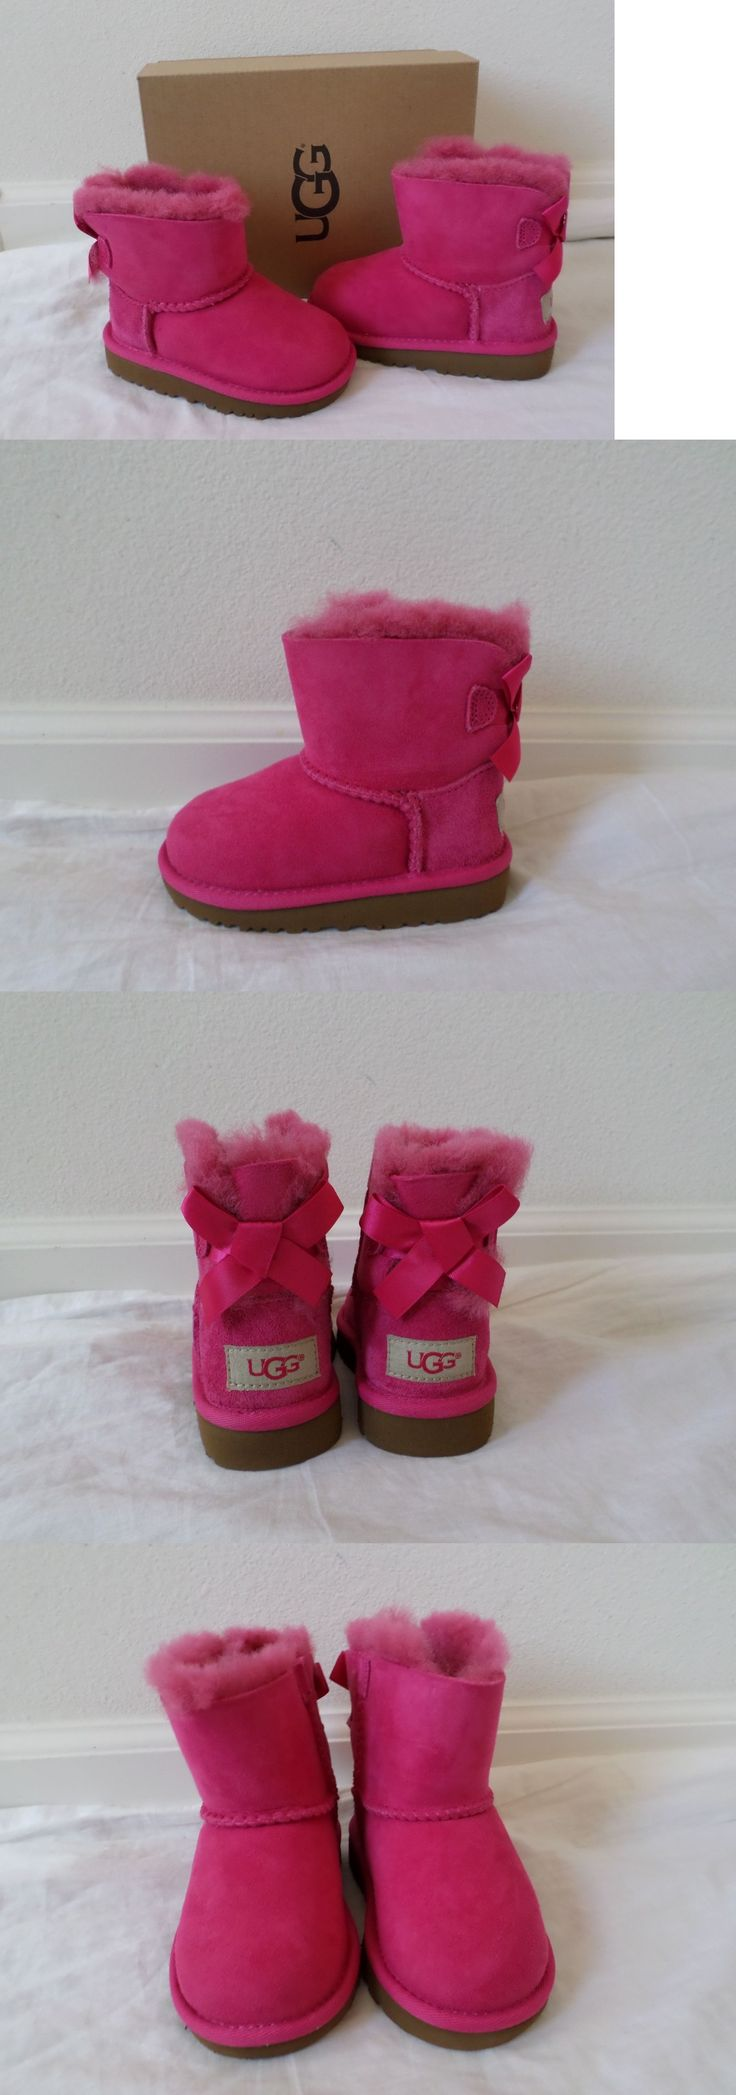 Infant Shoes: New Ugg Australia Toddler Girls Mini Bailey Bow Boots Cerise Pink Size 7 8 10 -> BUY IT NOW ONLY: $74.99 on eBay!